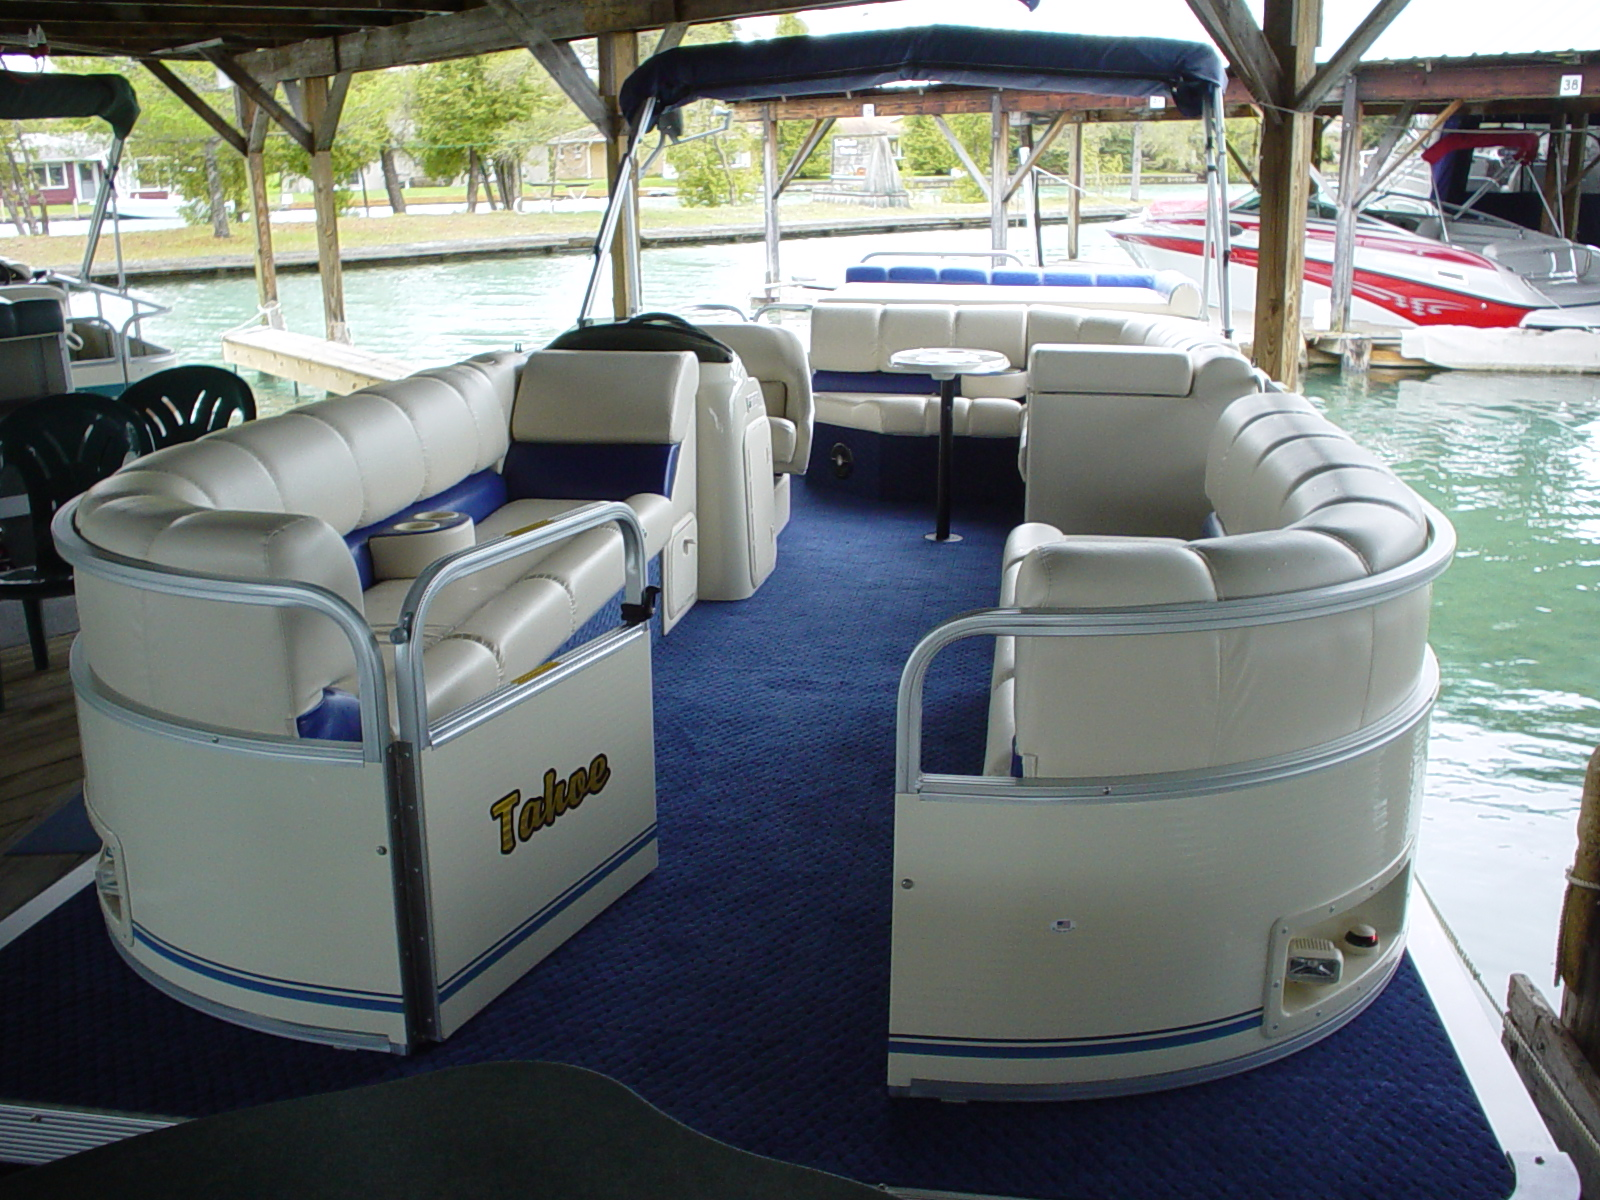 interior s album view boat upholstery marine vinyl d client shop tops interiors reupholster covers